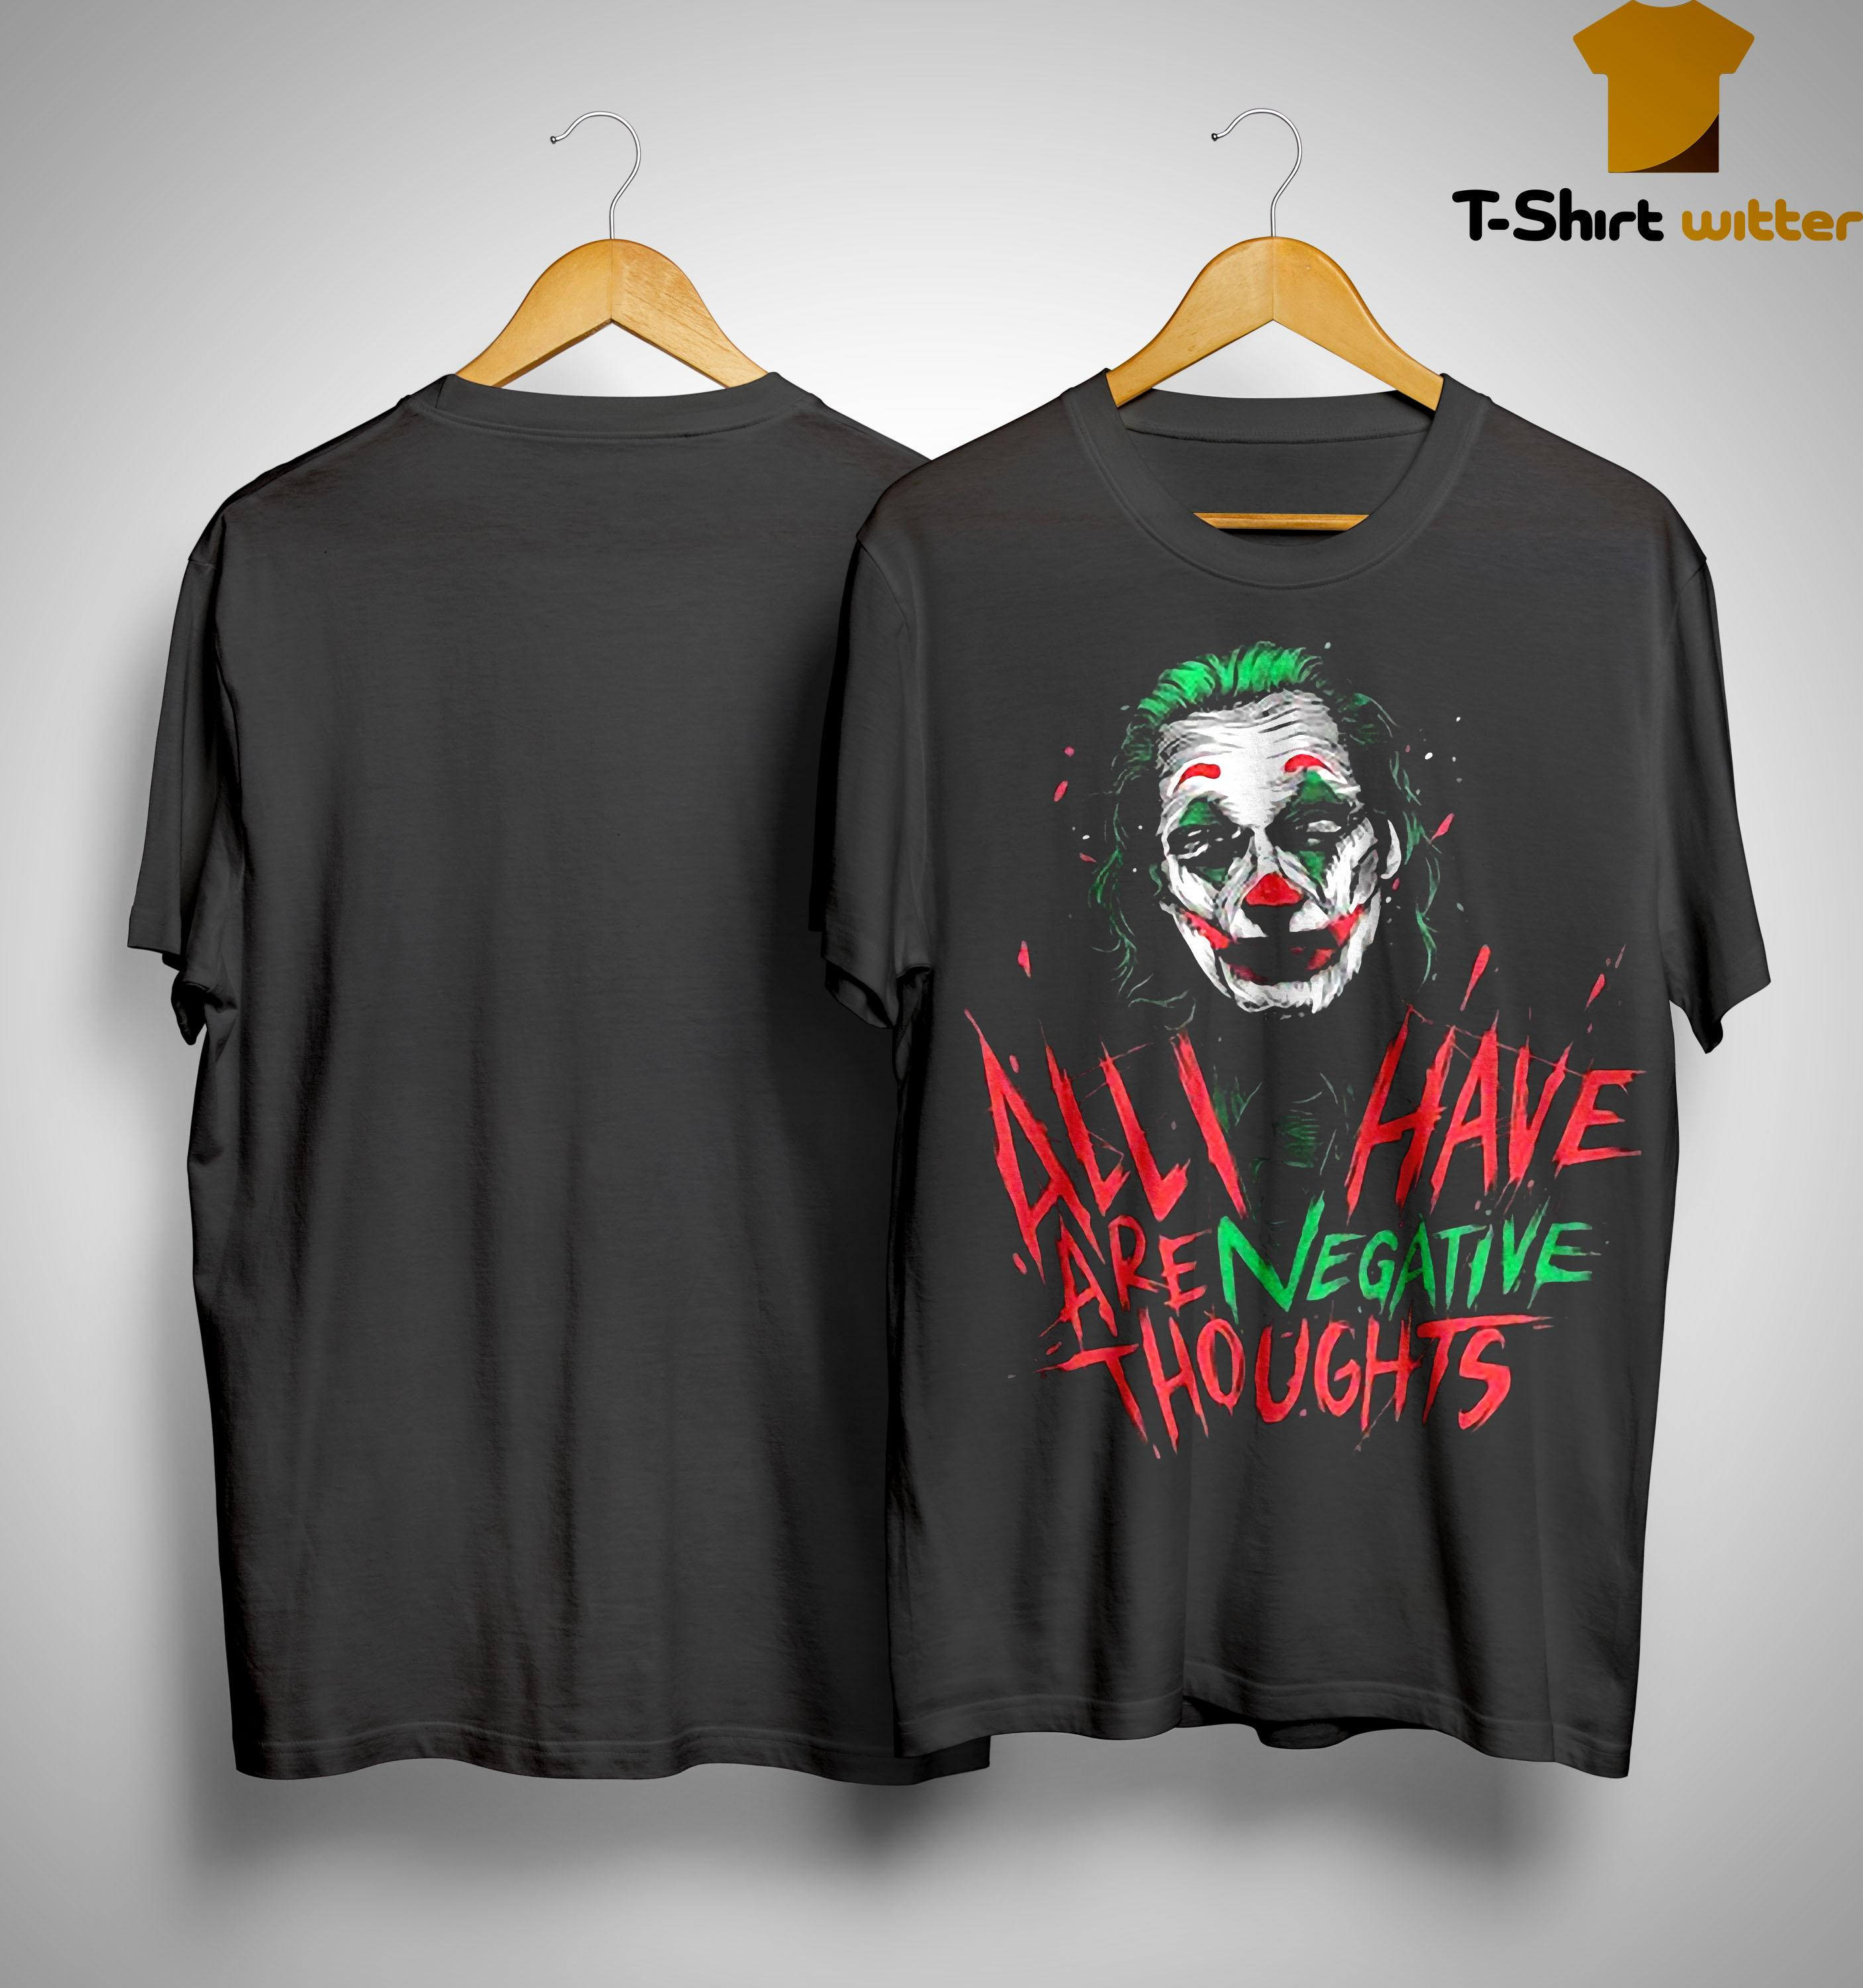 Joan Phoenix Joker All I Have Are Negative Thoughts Shirt